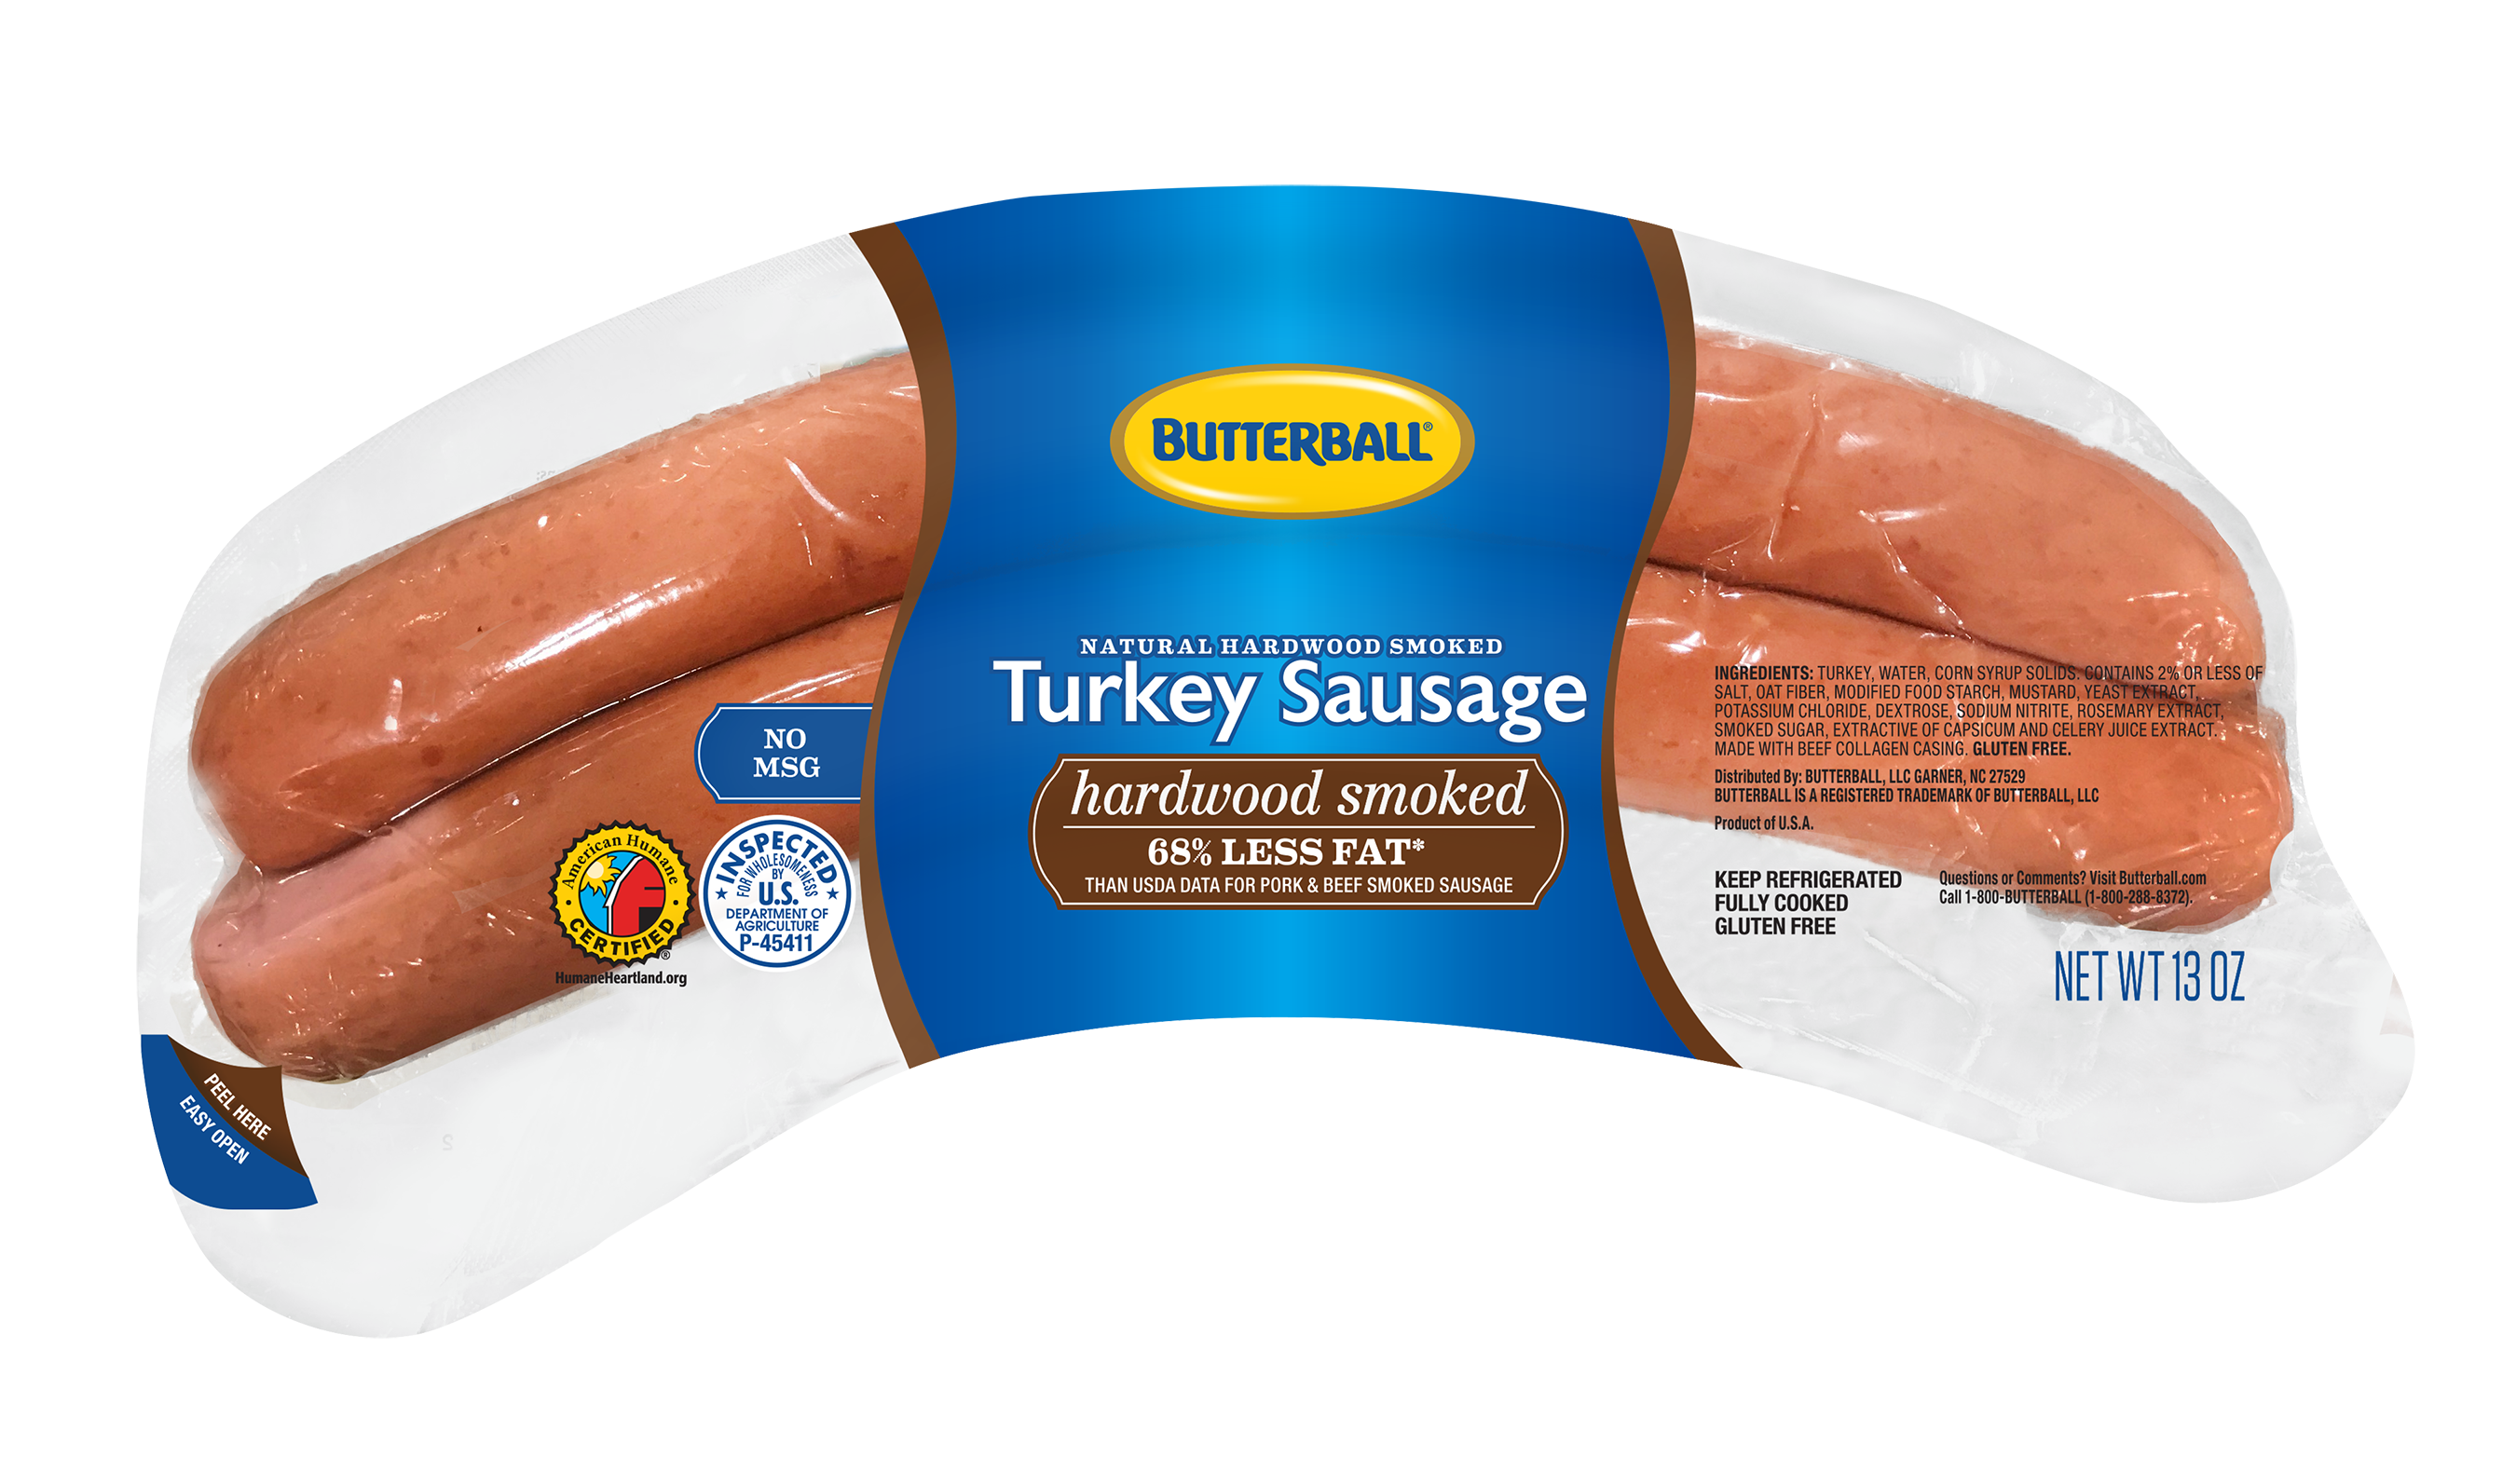 Hardwood Smoked Turkey Sausage product package